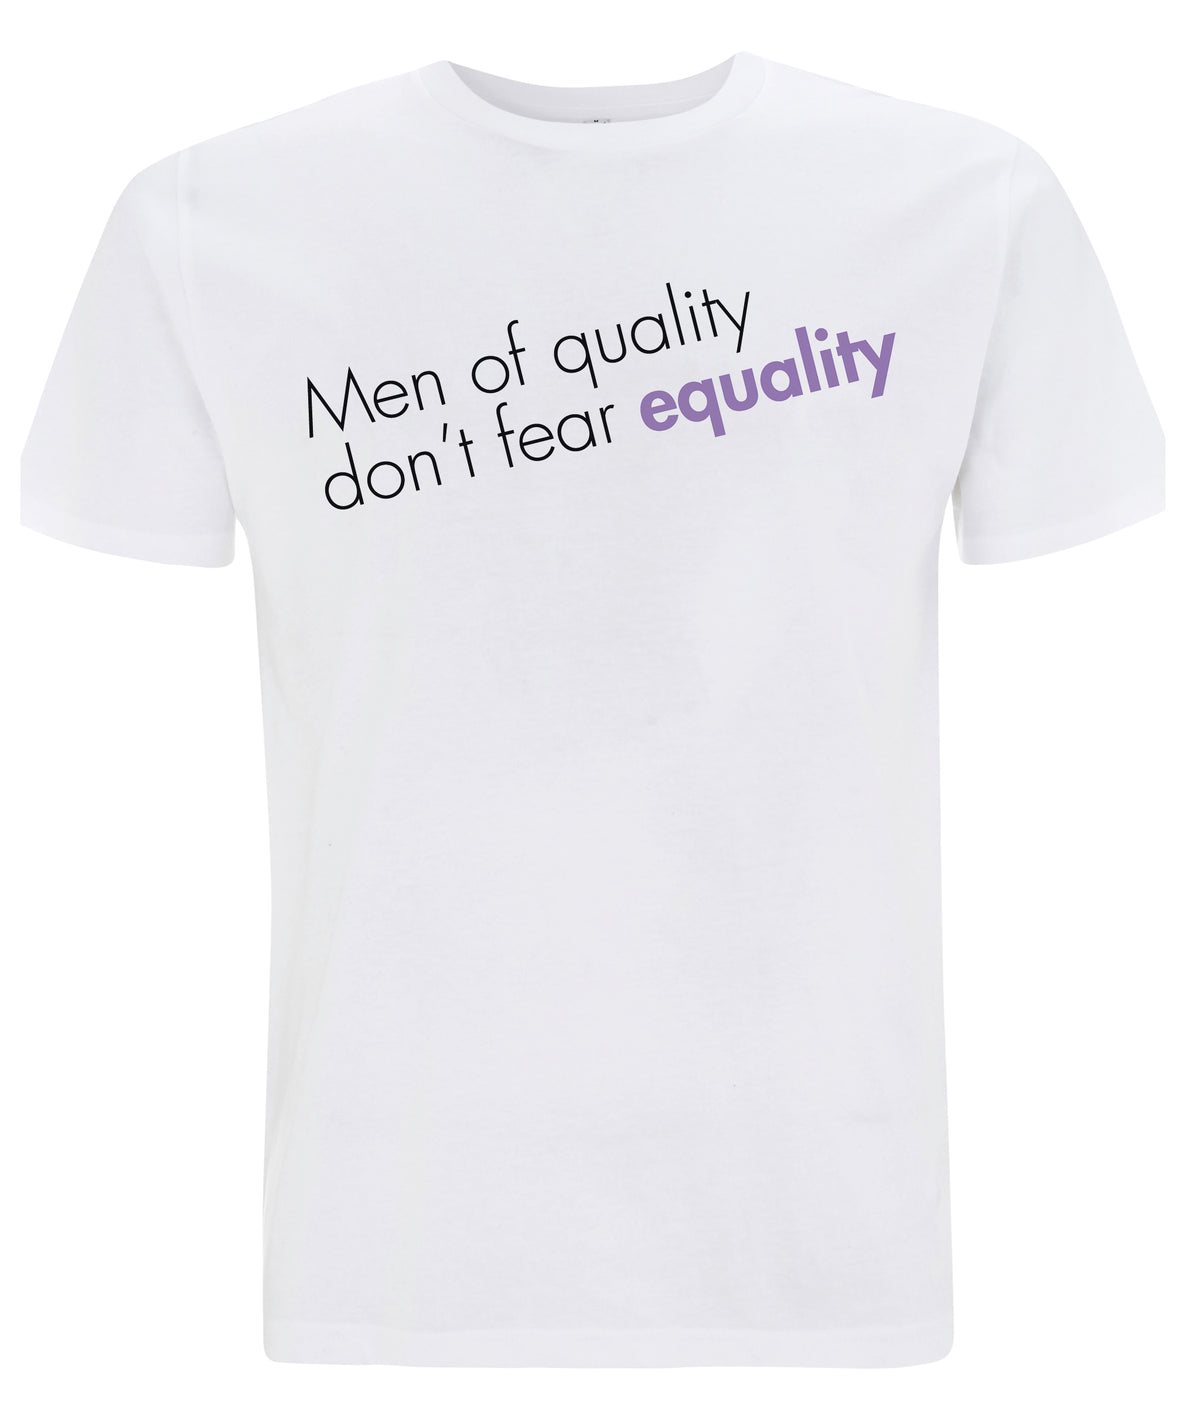 Men Of Quality Don't Fear Equality Organic Feminist T Shirt White